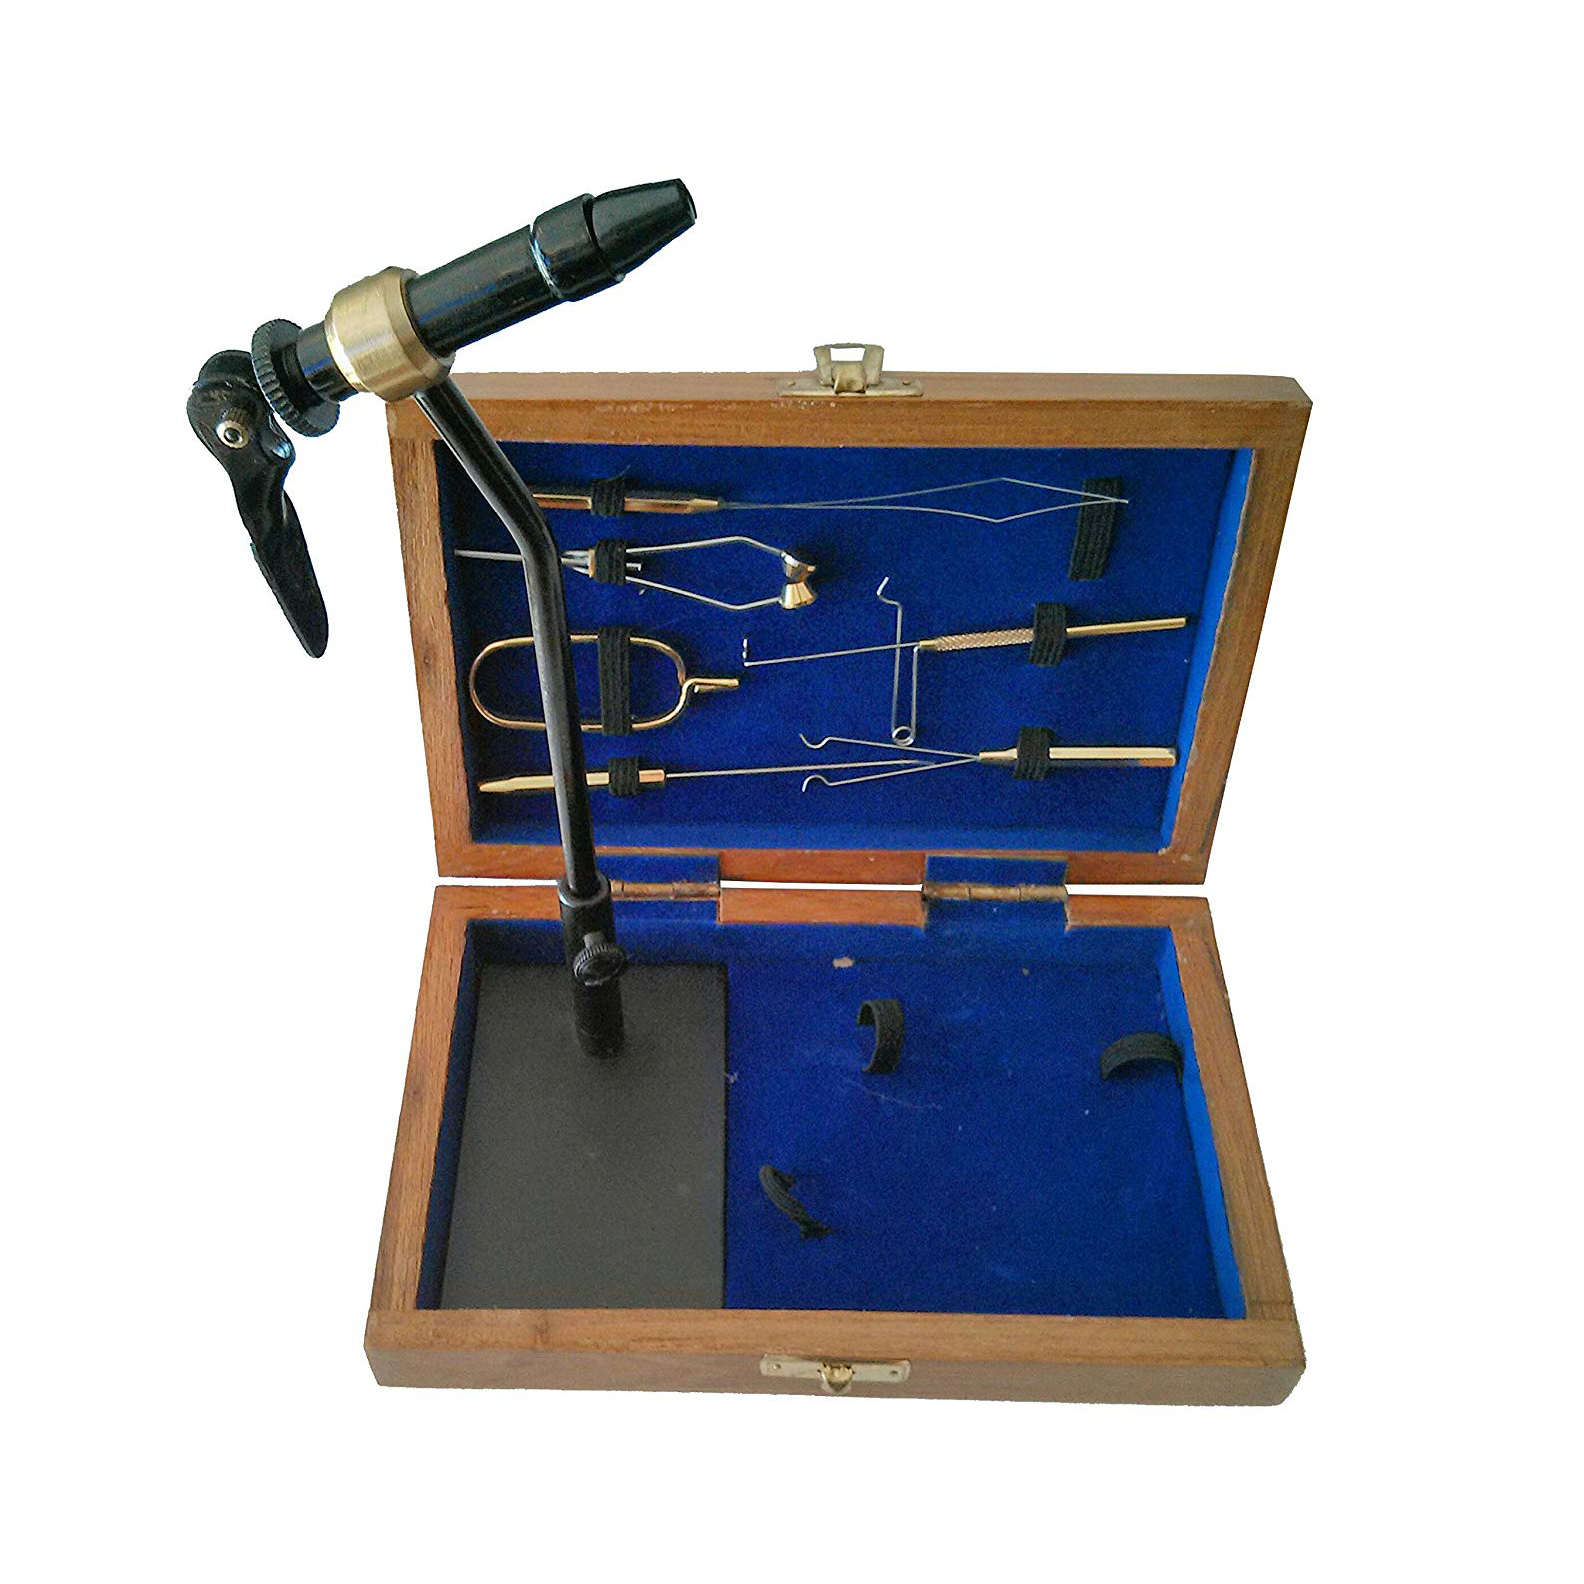 Fly tying tool kits for Beginner 01 TOOLS fly tying materials flies craft